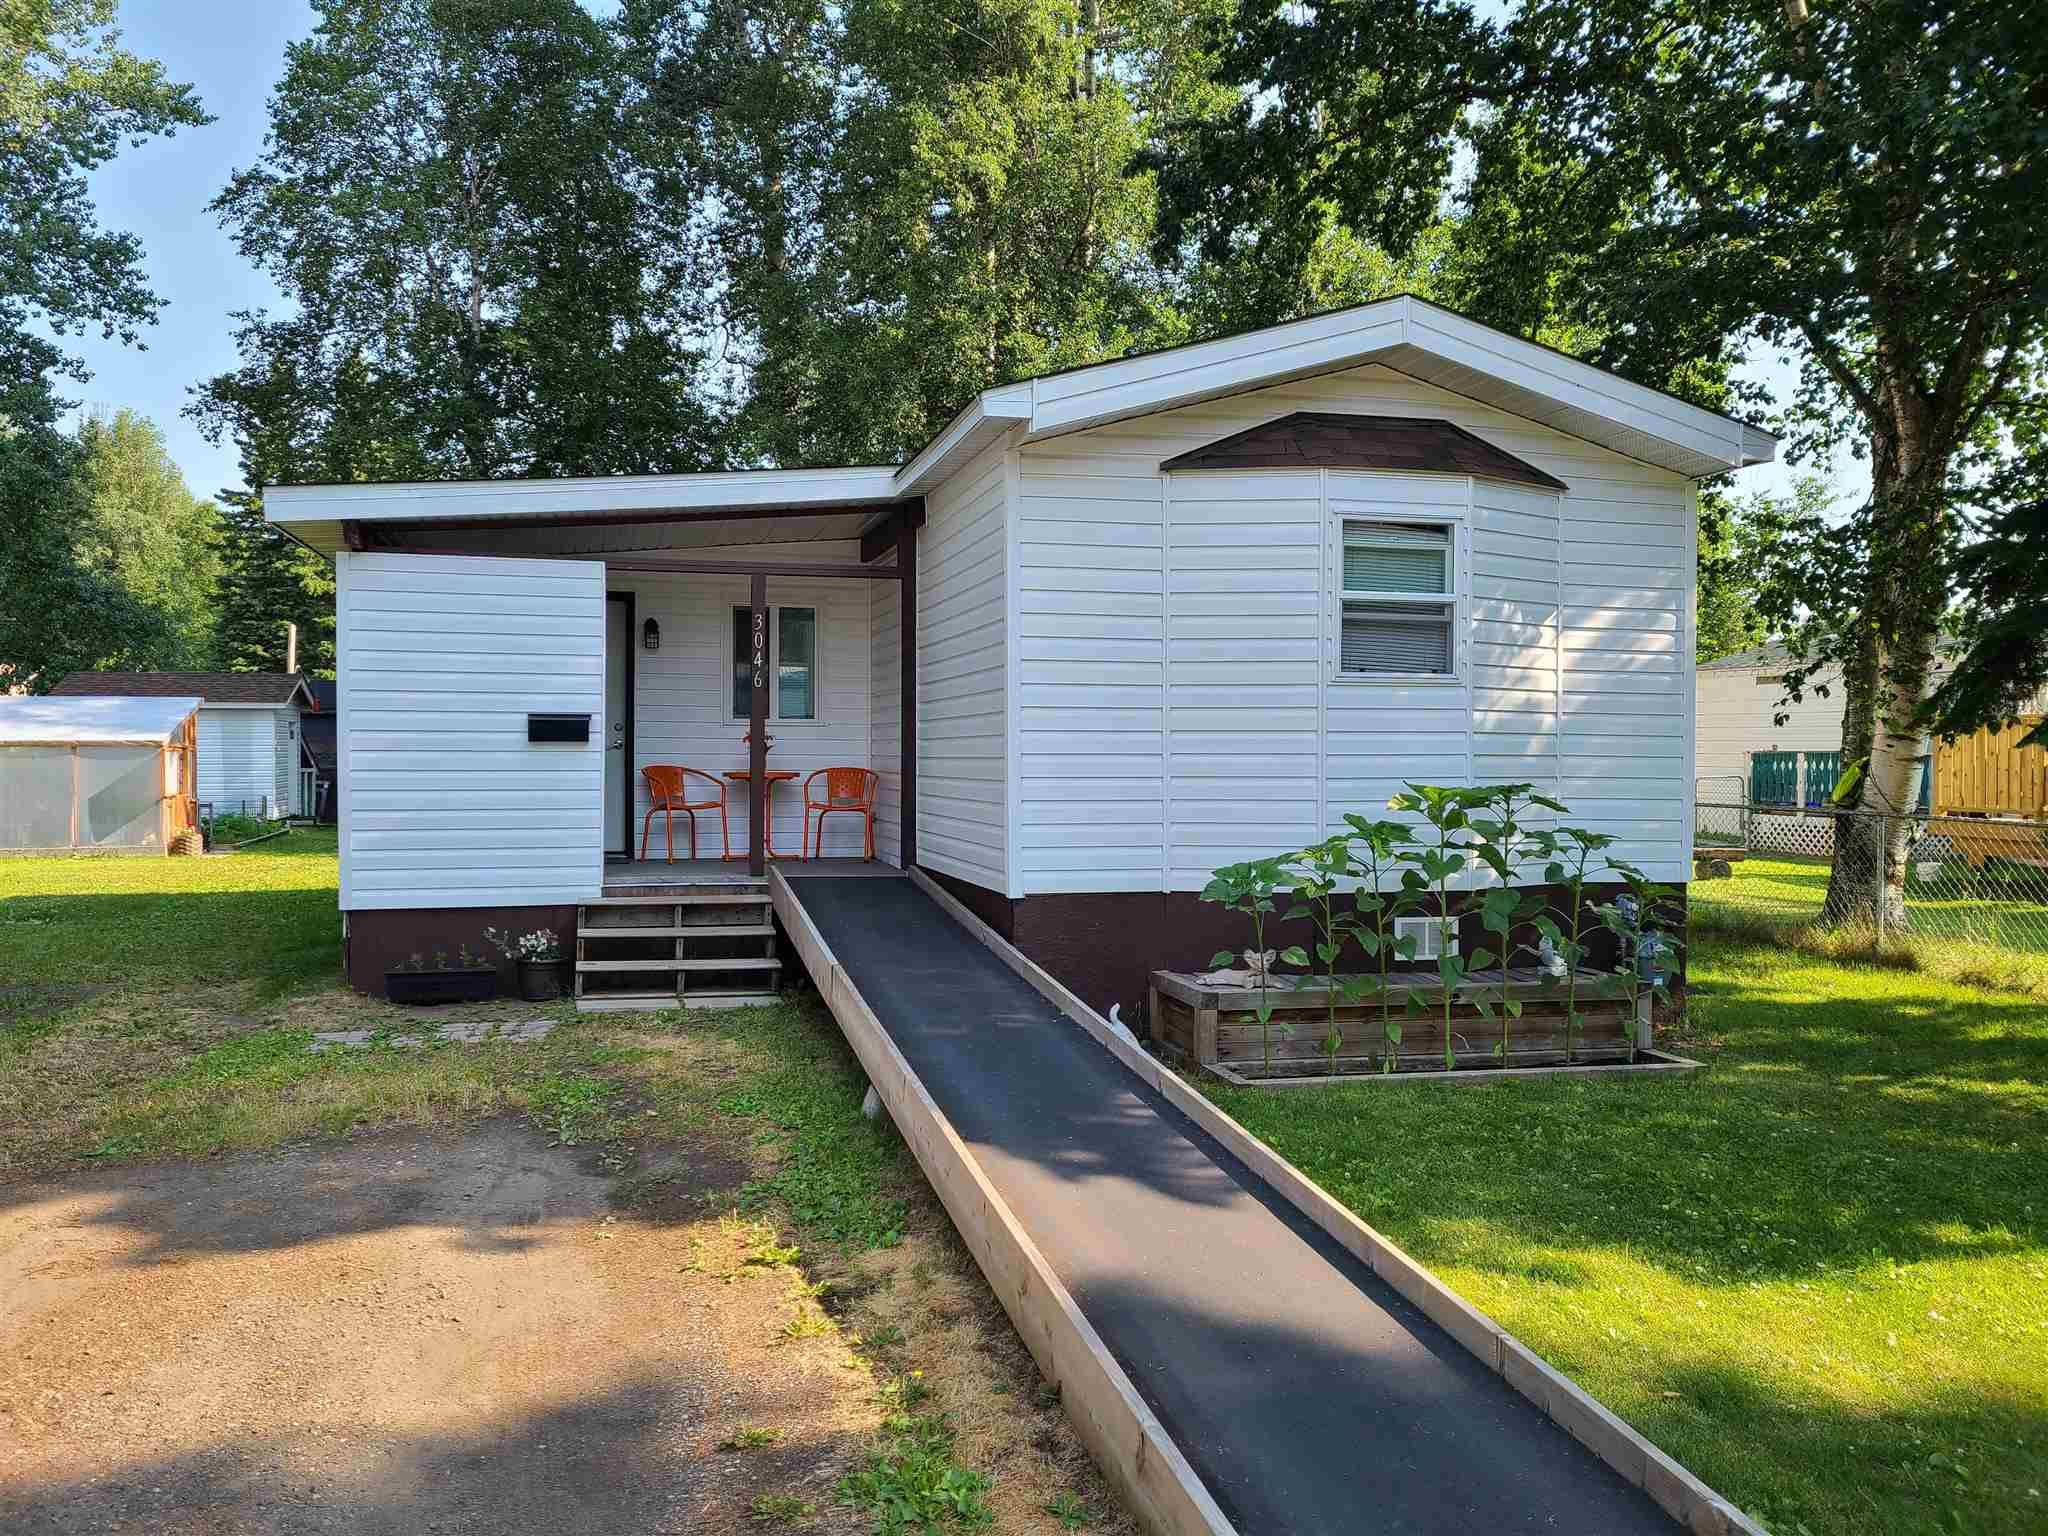 """Main Photo: 3046 EDEN Drive in Prince George: Emerald Manufactured Home for sale in """"EMERALD"""" (PG City North (Zone 73))  : MLS®# R2601210"""